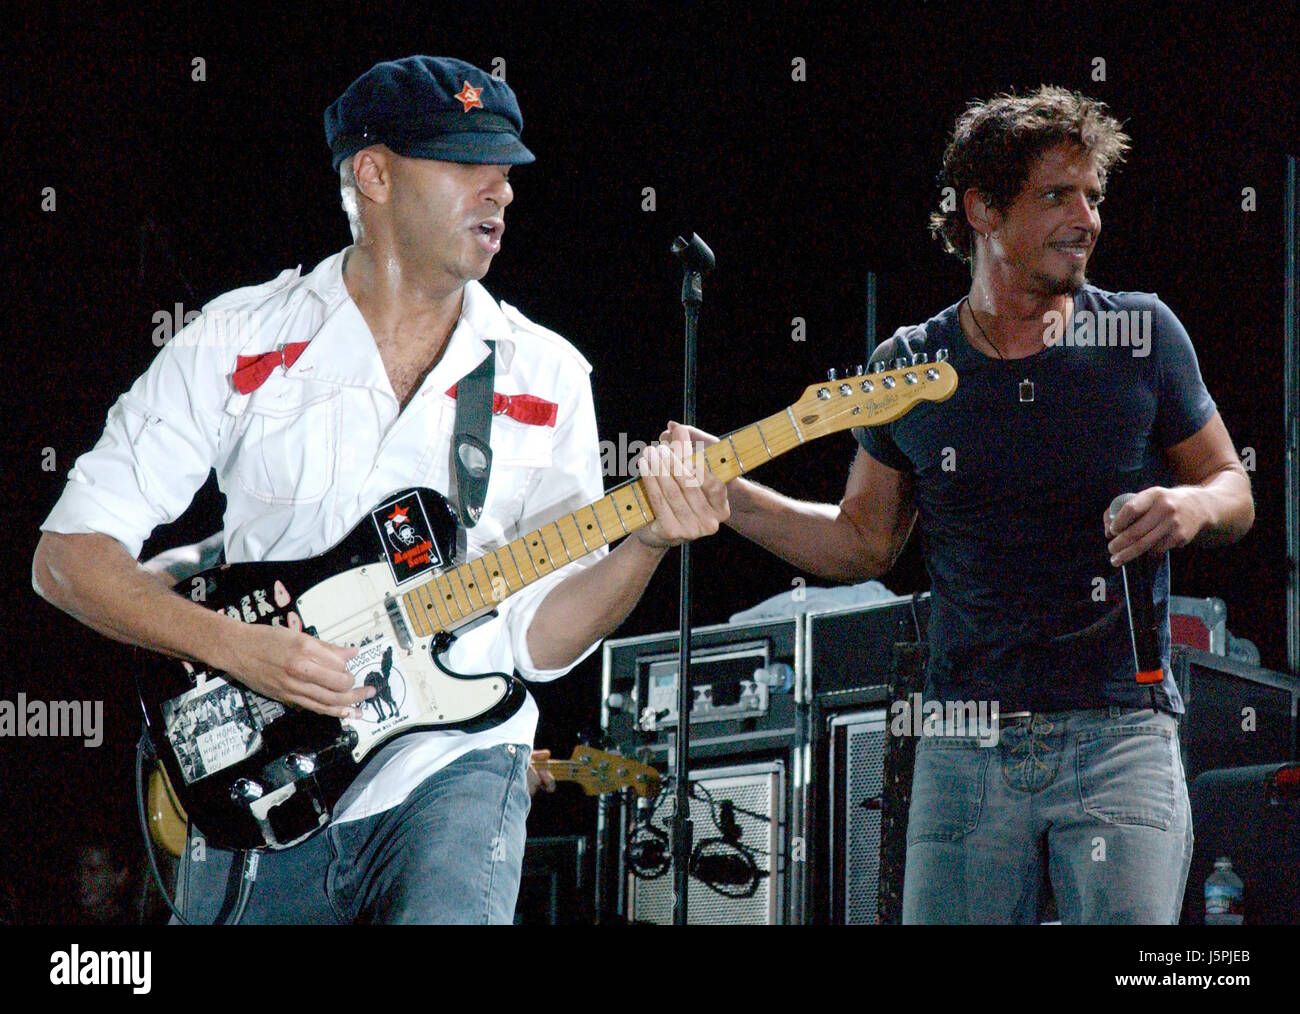 August 16, 2003 - Audioslave performs during Lollapalooza 2003. The show was held at Verizon Amphitheater on Saturday. - Stock Image